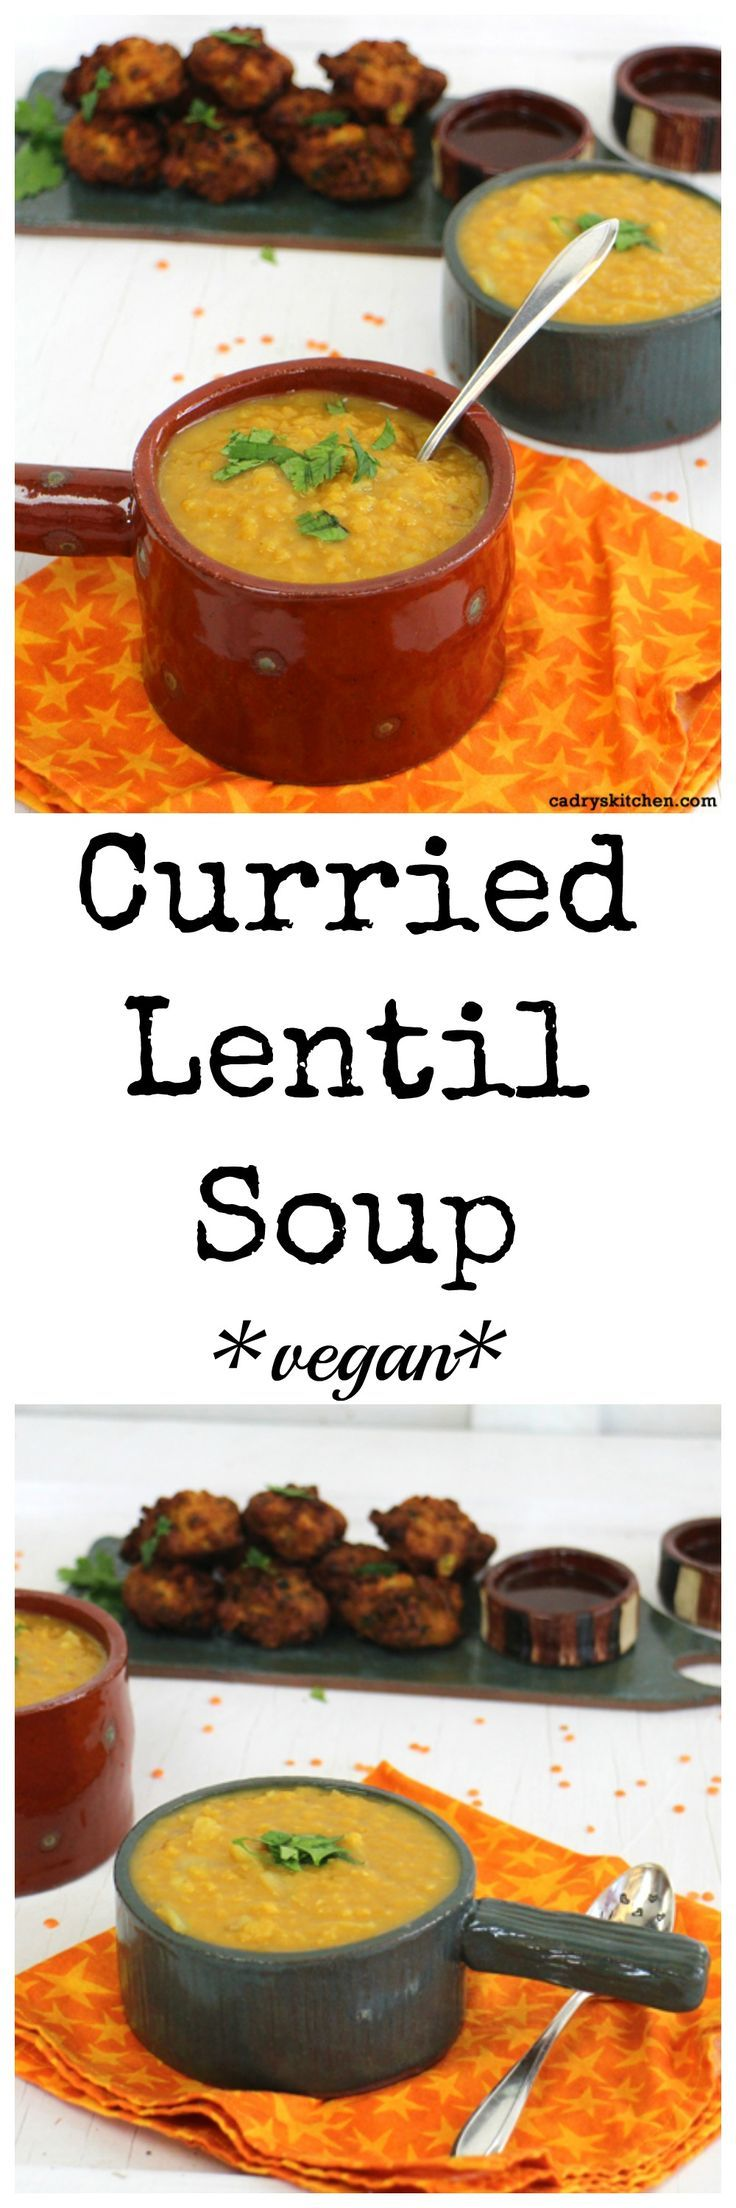 Curried lentil soup - A pantry friendly vegan meal | cadryskitchen.com